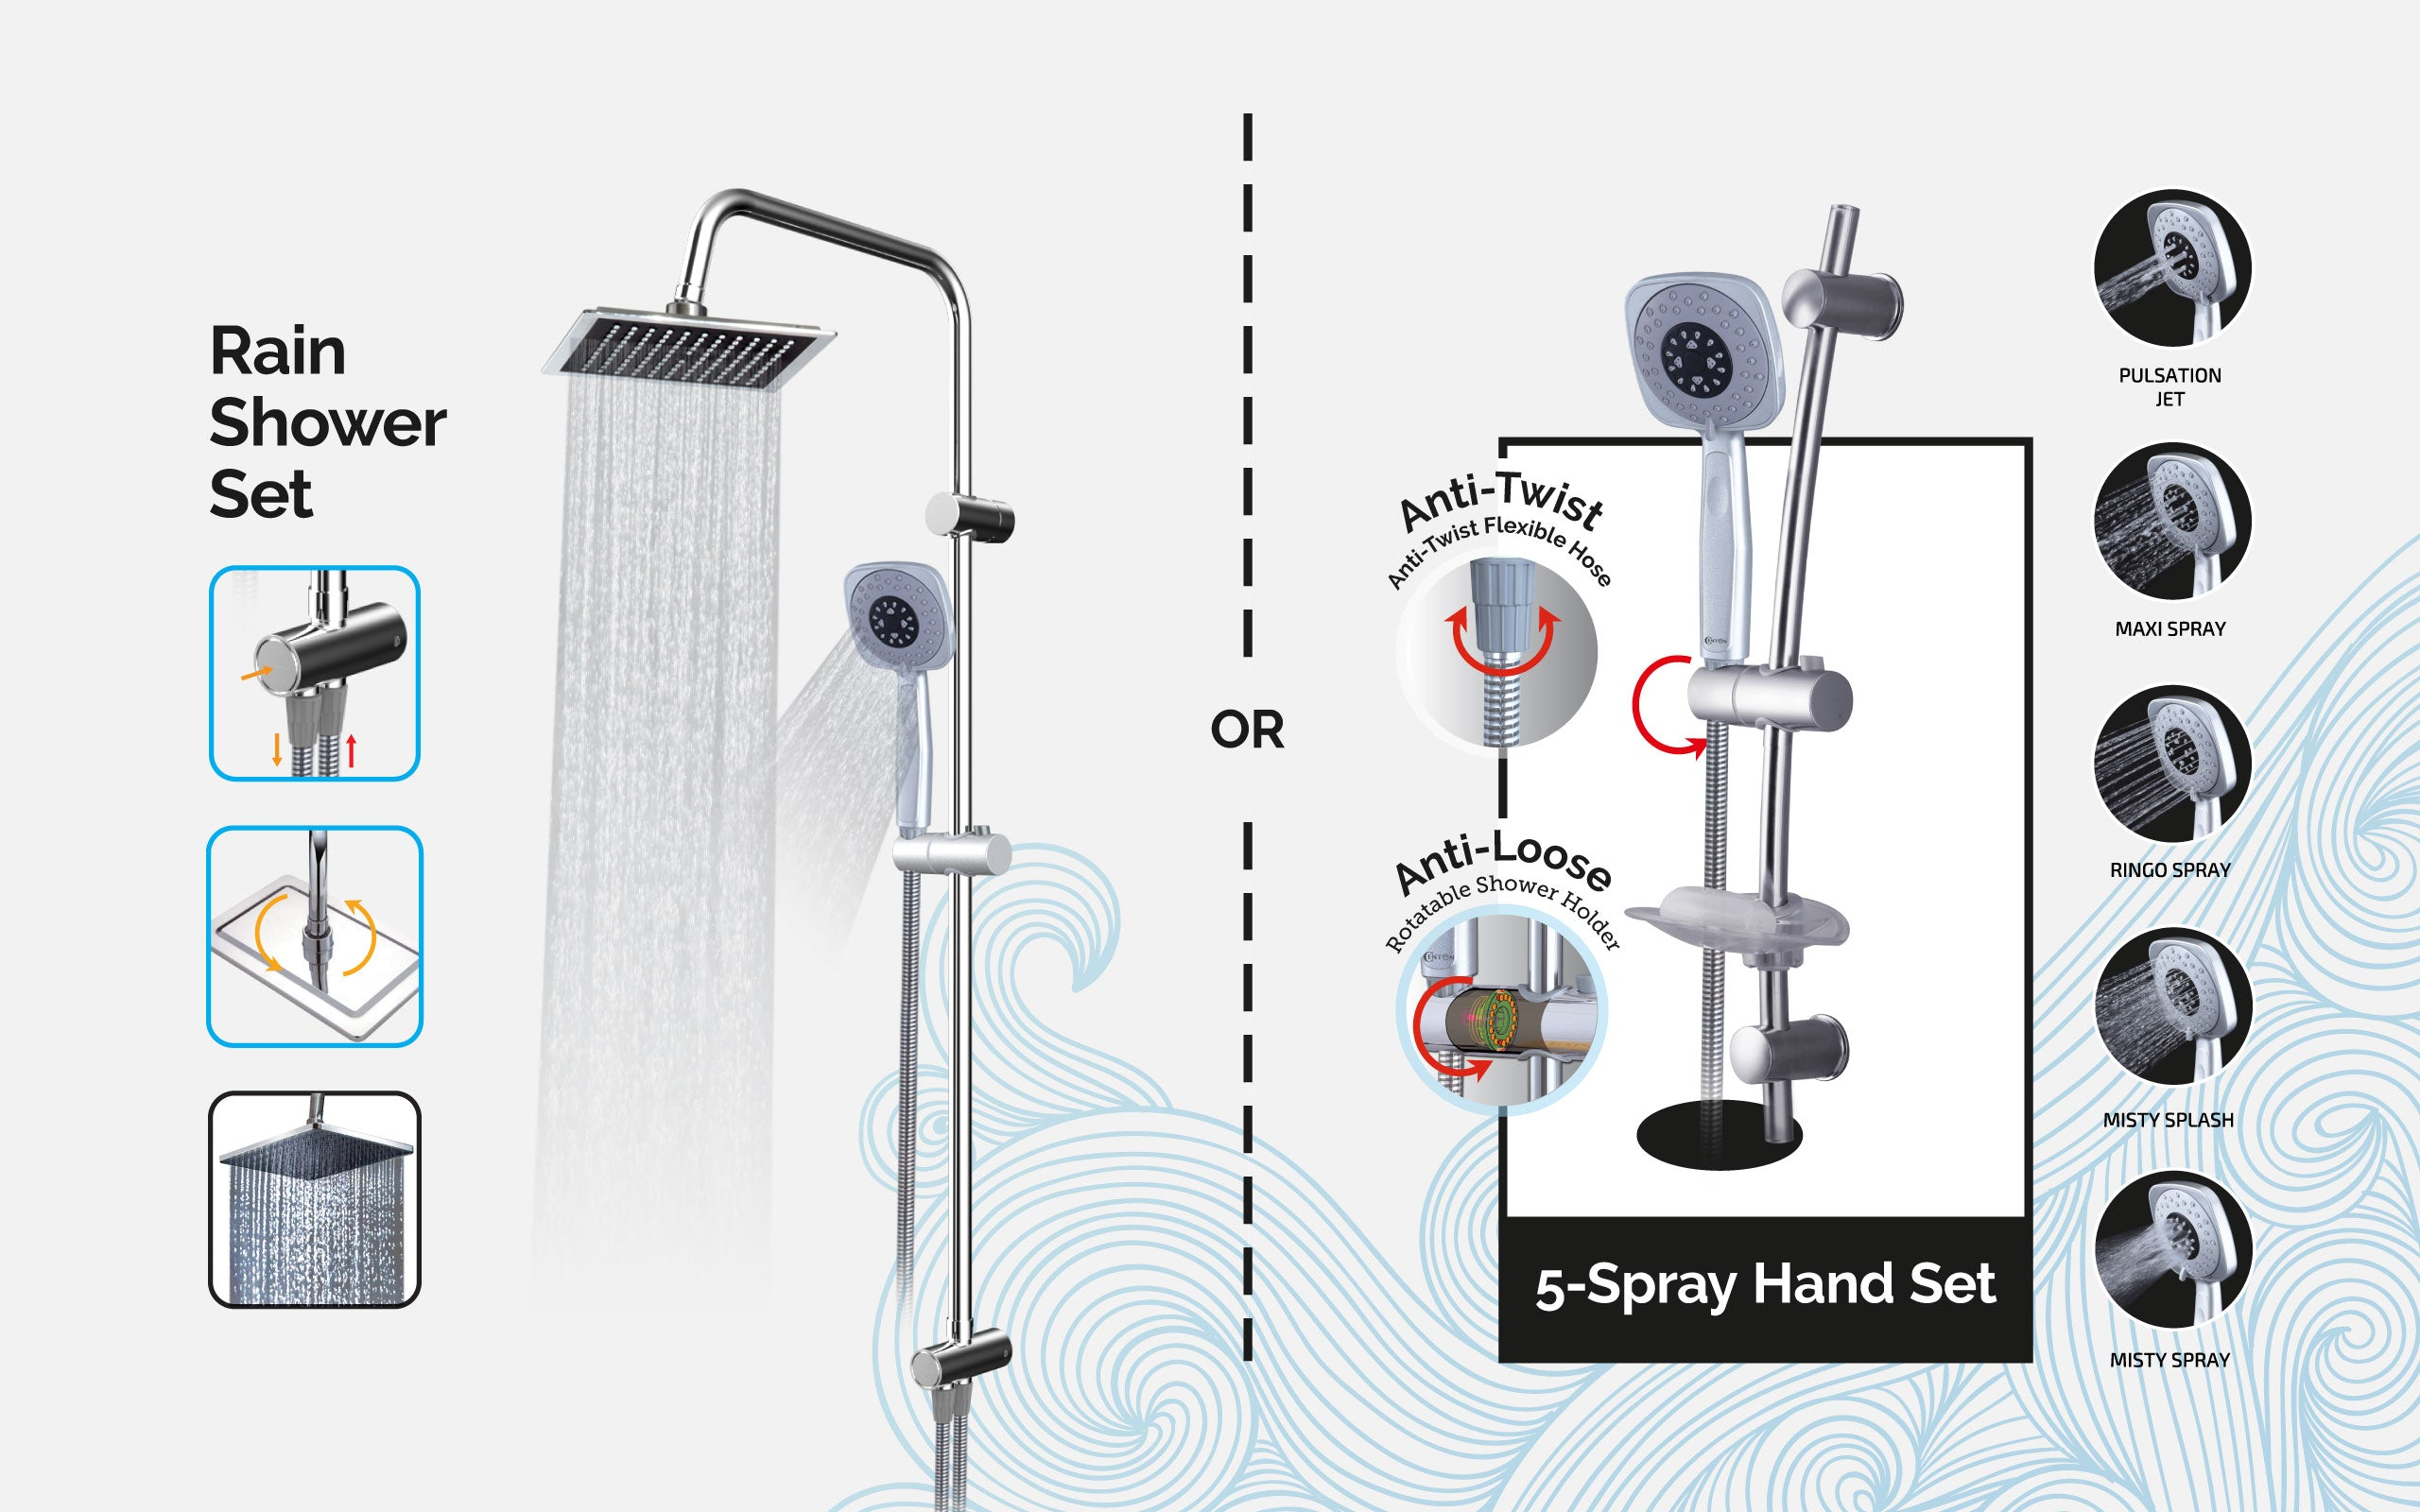 CENTON Accessories | Shower Railings and Rain Shower Set